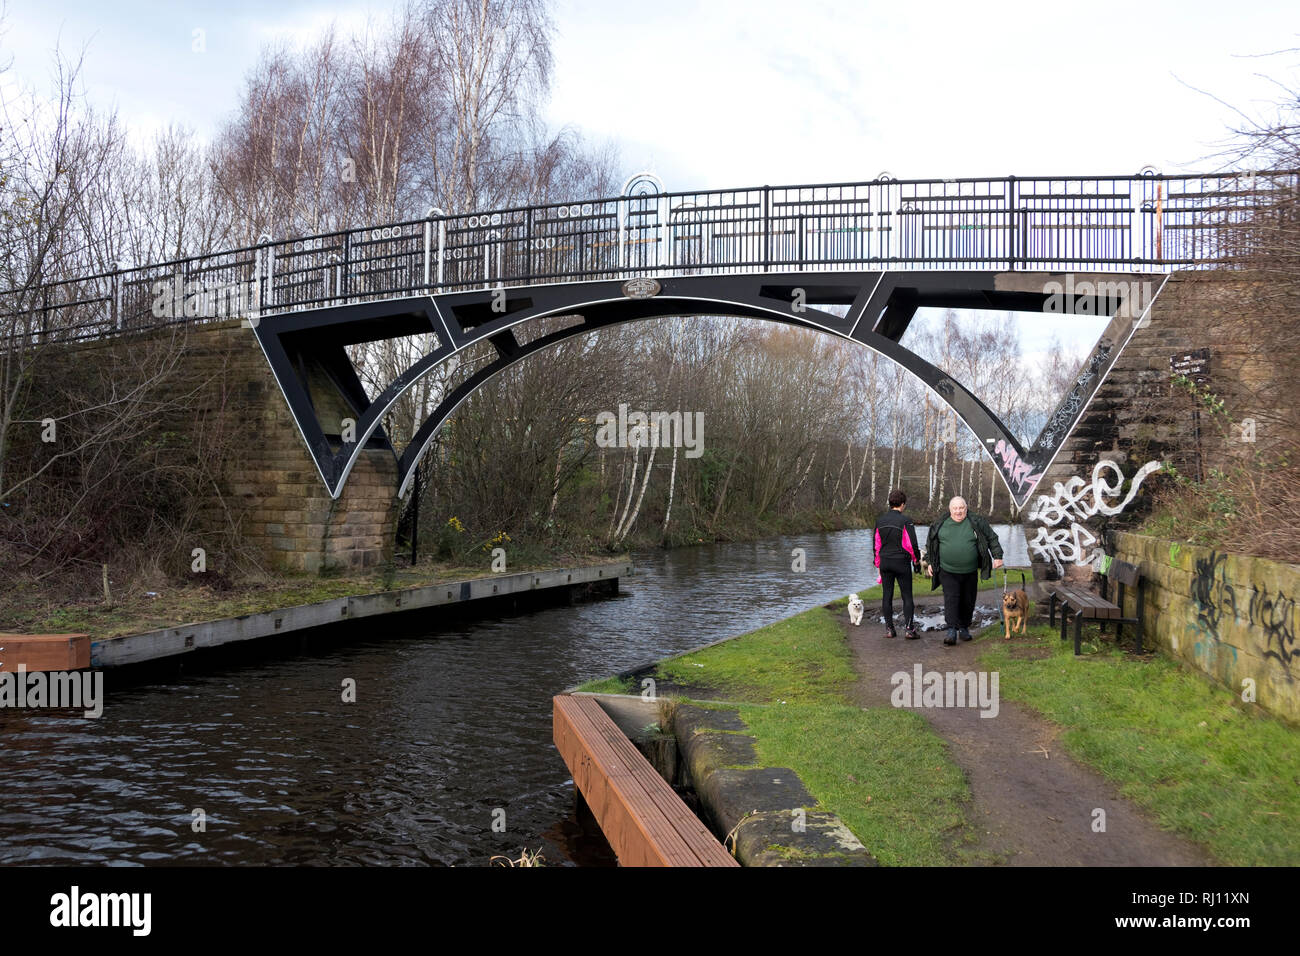 Sheffield, UK – January 24 2016 : two dog walkers greet one another beneath Brown Bayley Bridge no. 10a on the Sheffield and Tinsley Canal - Stock Image